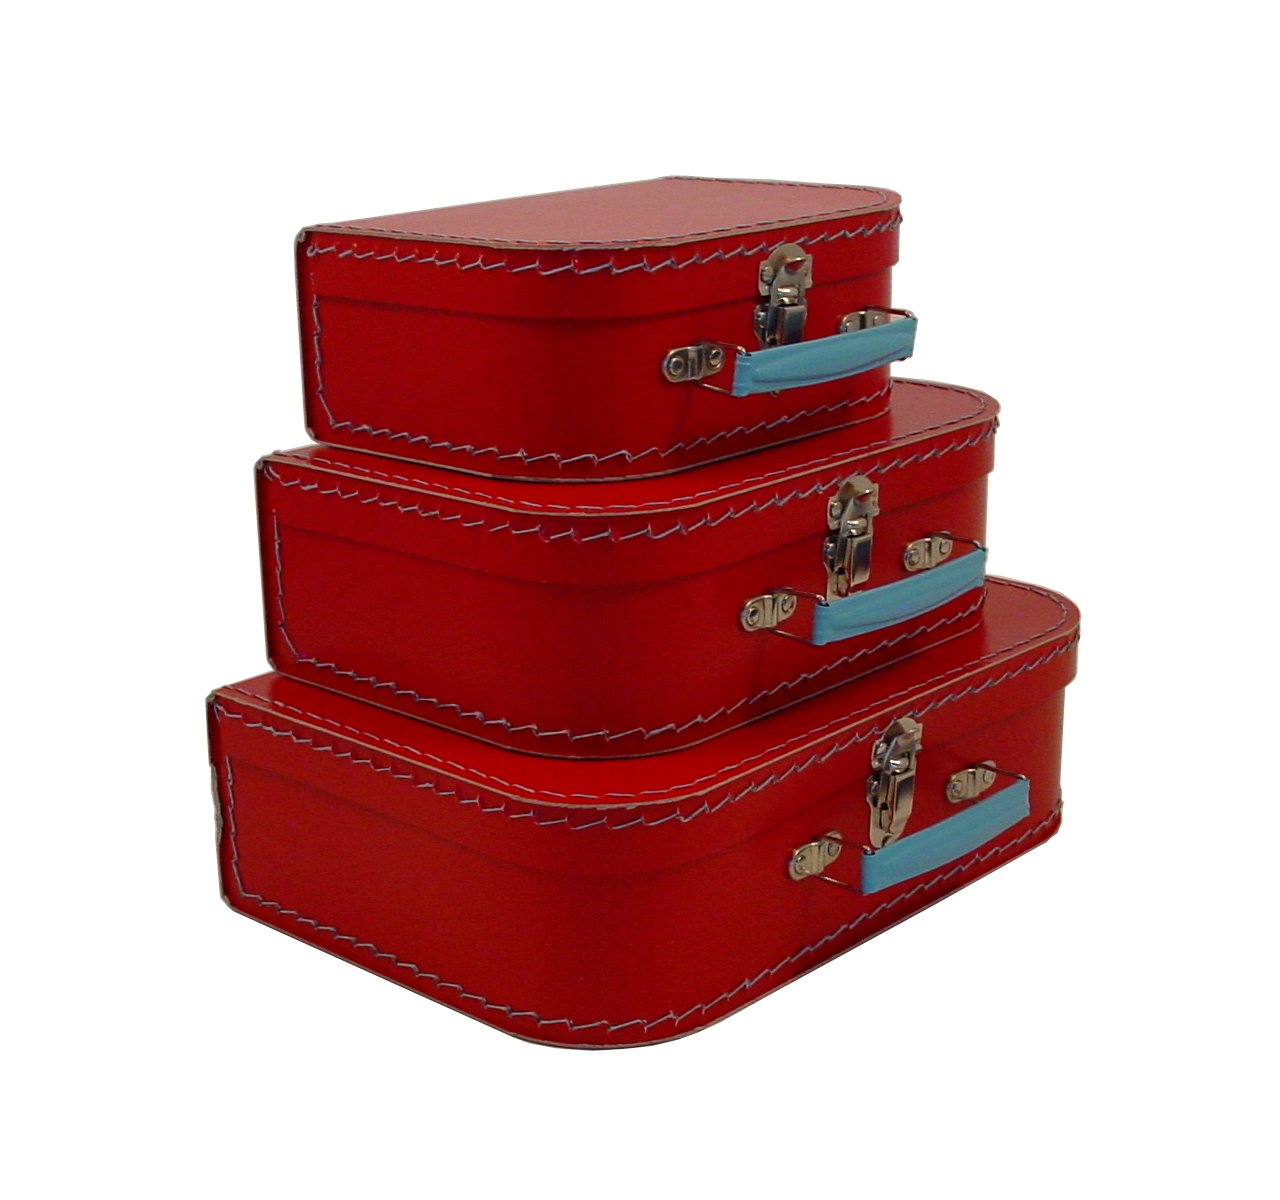 cargo Vintage Travelers Mini Suitcases, Set of 3, Red by cargo